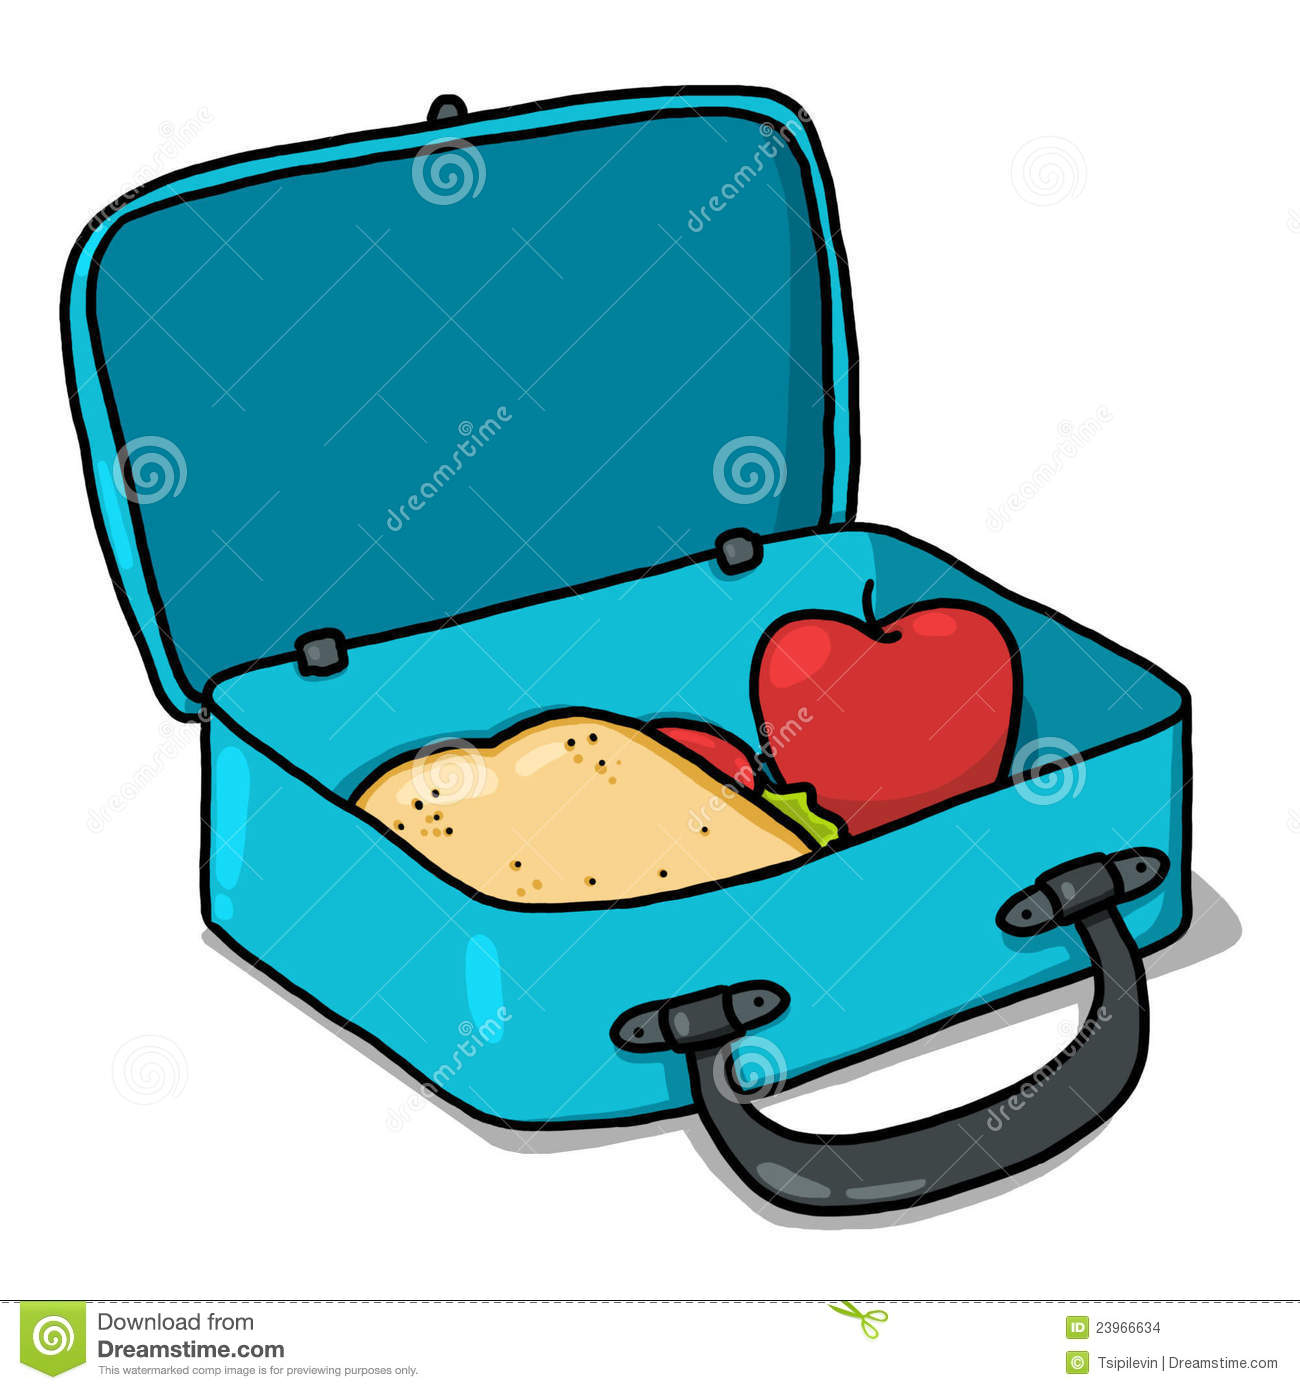 lunch bag clipart - photo #19